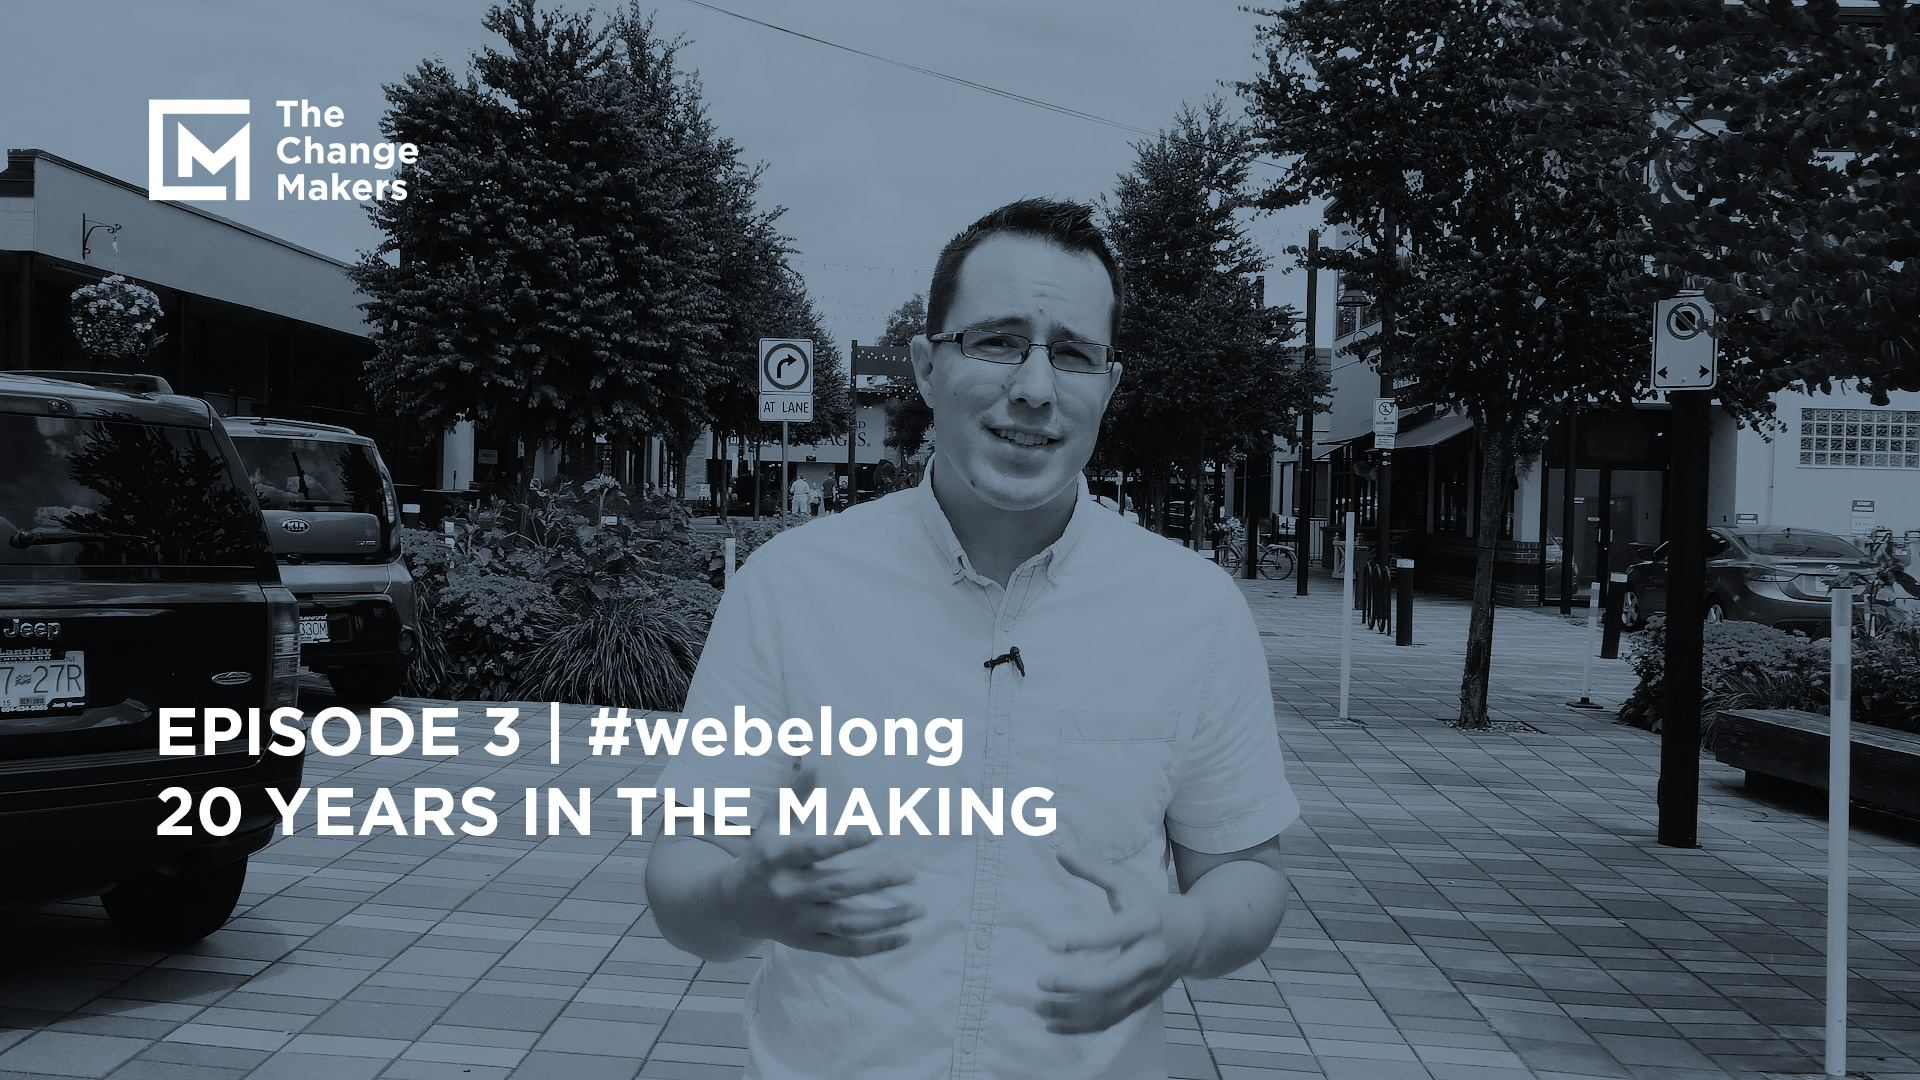 #webelong / 20 Years in the Making / The Change Makers / Episode 3